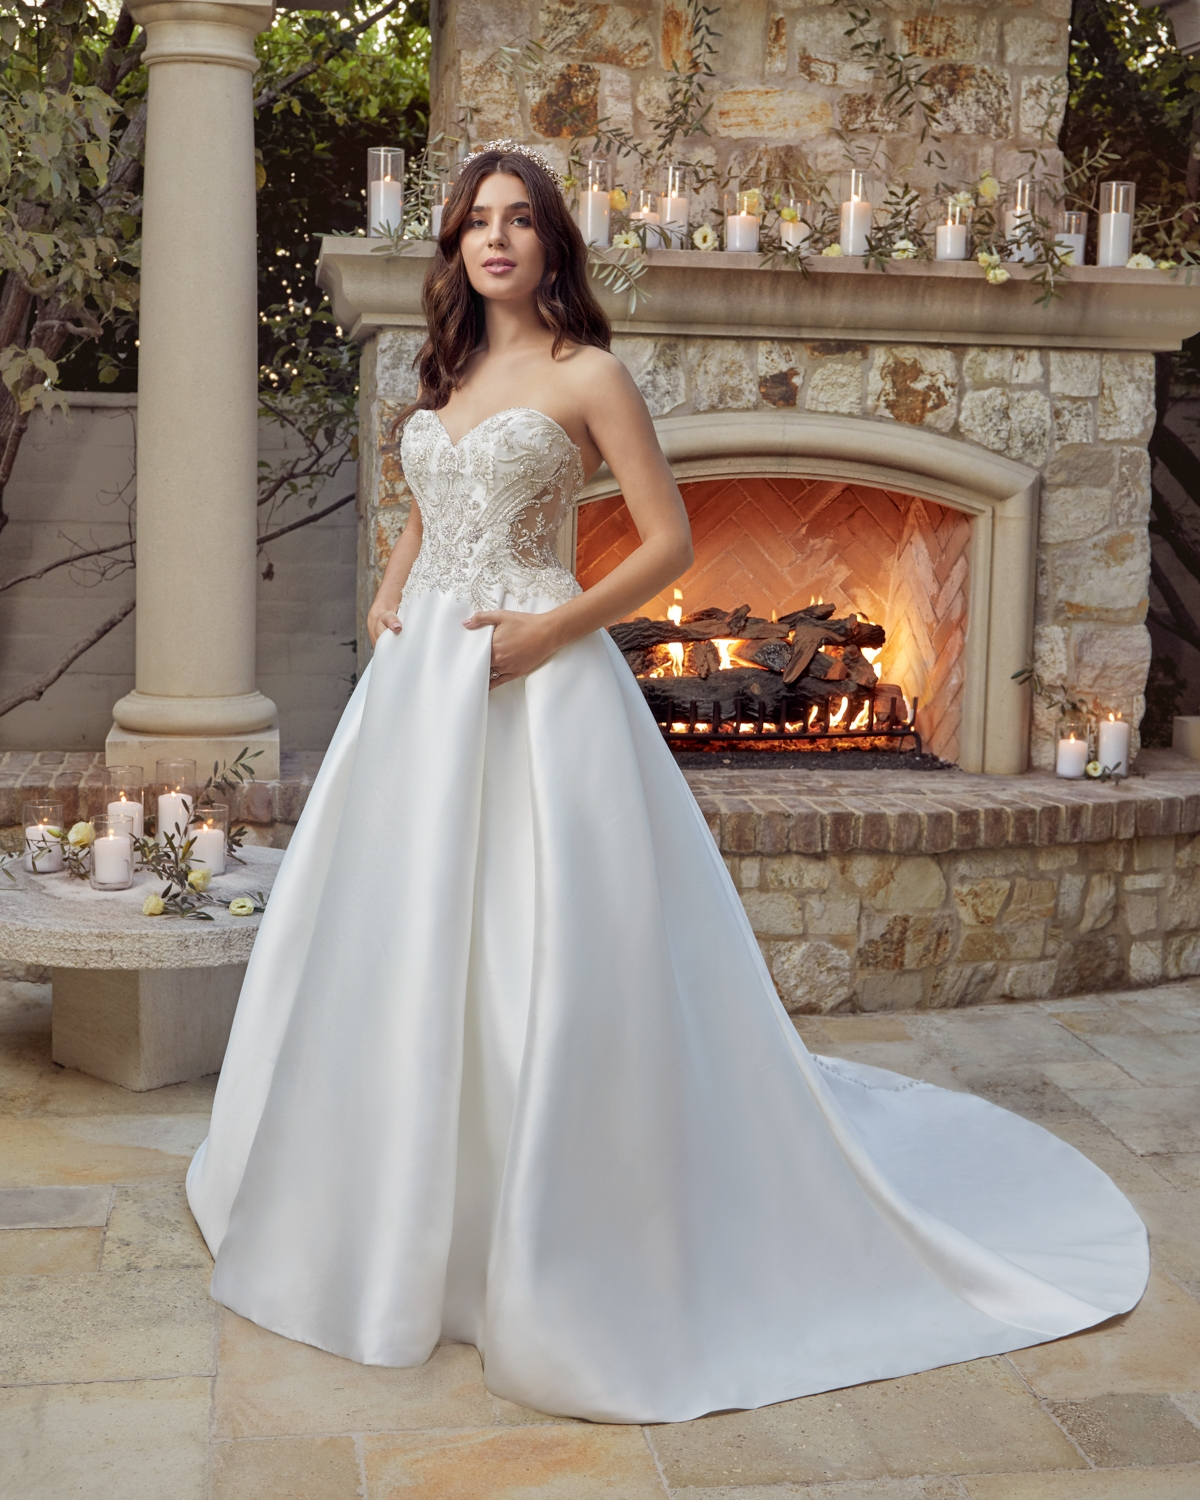 Glittering Mikado with Beading & Sequin Embroidery Off The Shoulder Sweetheart Neckline Bridal Gown